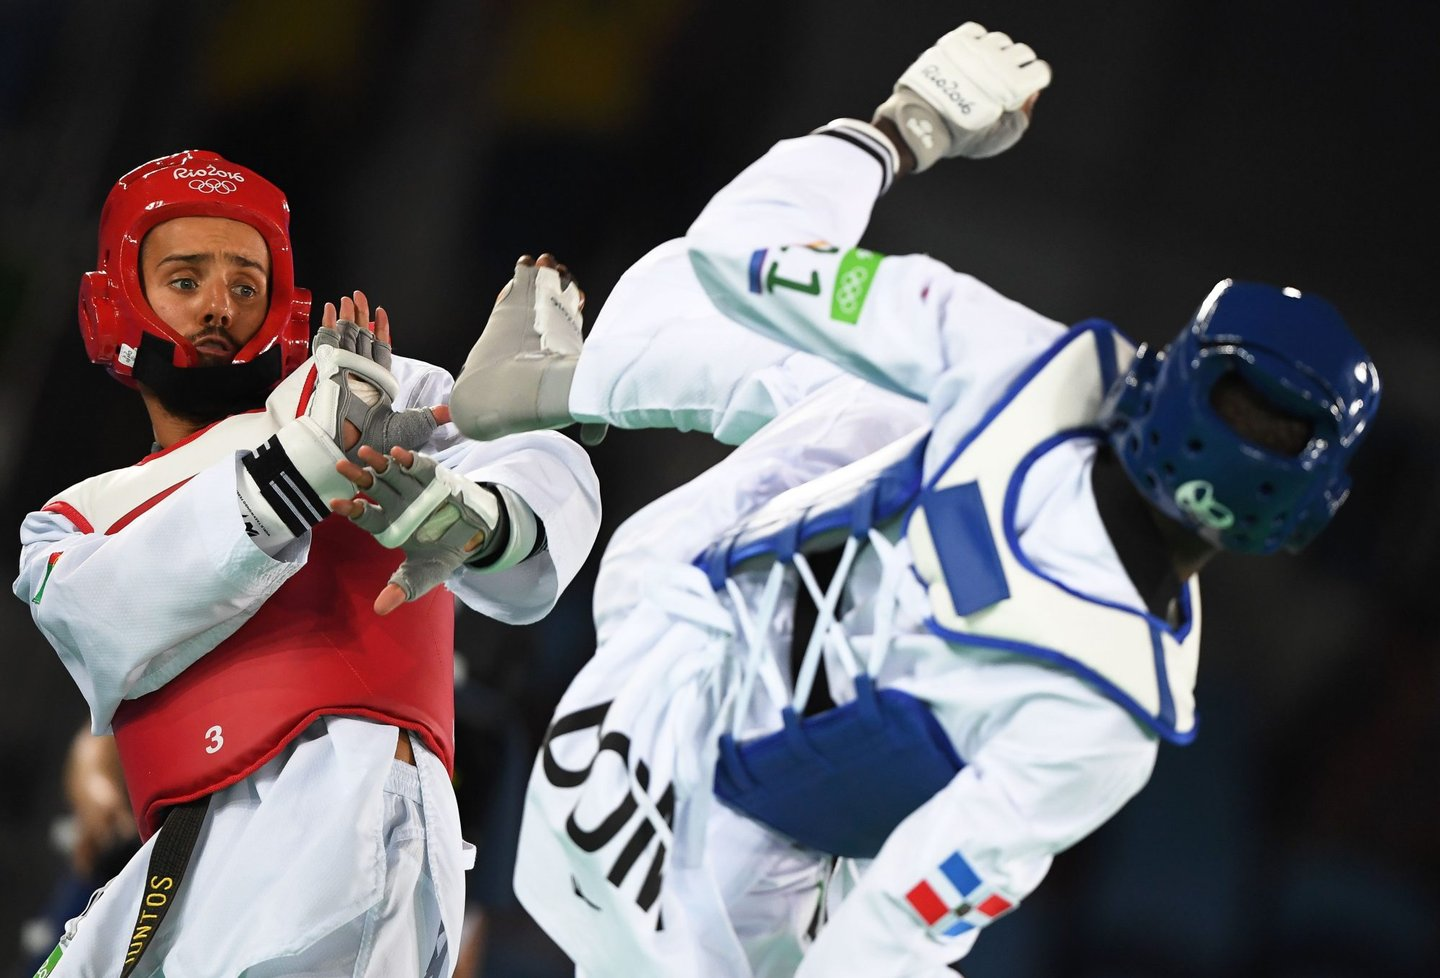 Portugal's Rui Braganca (L) competes against Dominican Republic's Luisito Pie during their men's taekwondo quarter-final bout in the -68kg category as part of the Rio 2016 Olympic Games, on August 18, 2016, at the Carioca Arena 3, in Rio de Janeiro. / AFP / Kirill KUDRYAVTSEV (Photo credit should read KIRILL KUDRYAVTSEV/AFP/Getty Images)